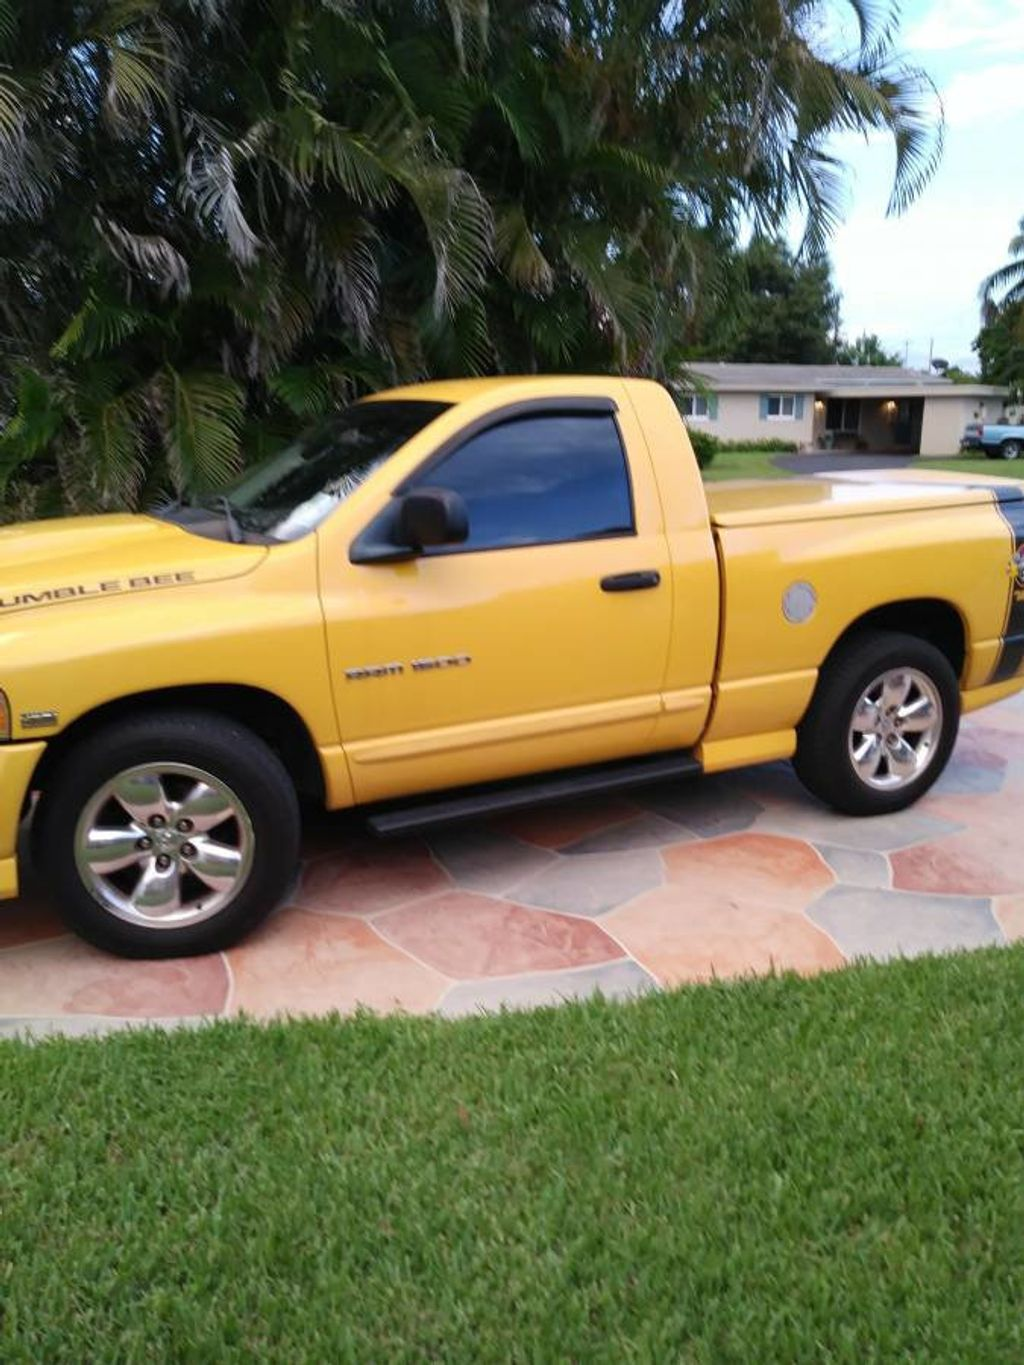 2005 used dodge ram 1500 rumble bee limited edition for sale at webe autos serving long island. Black Bedroom Furniture Sets. Home Design Ideas